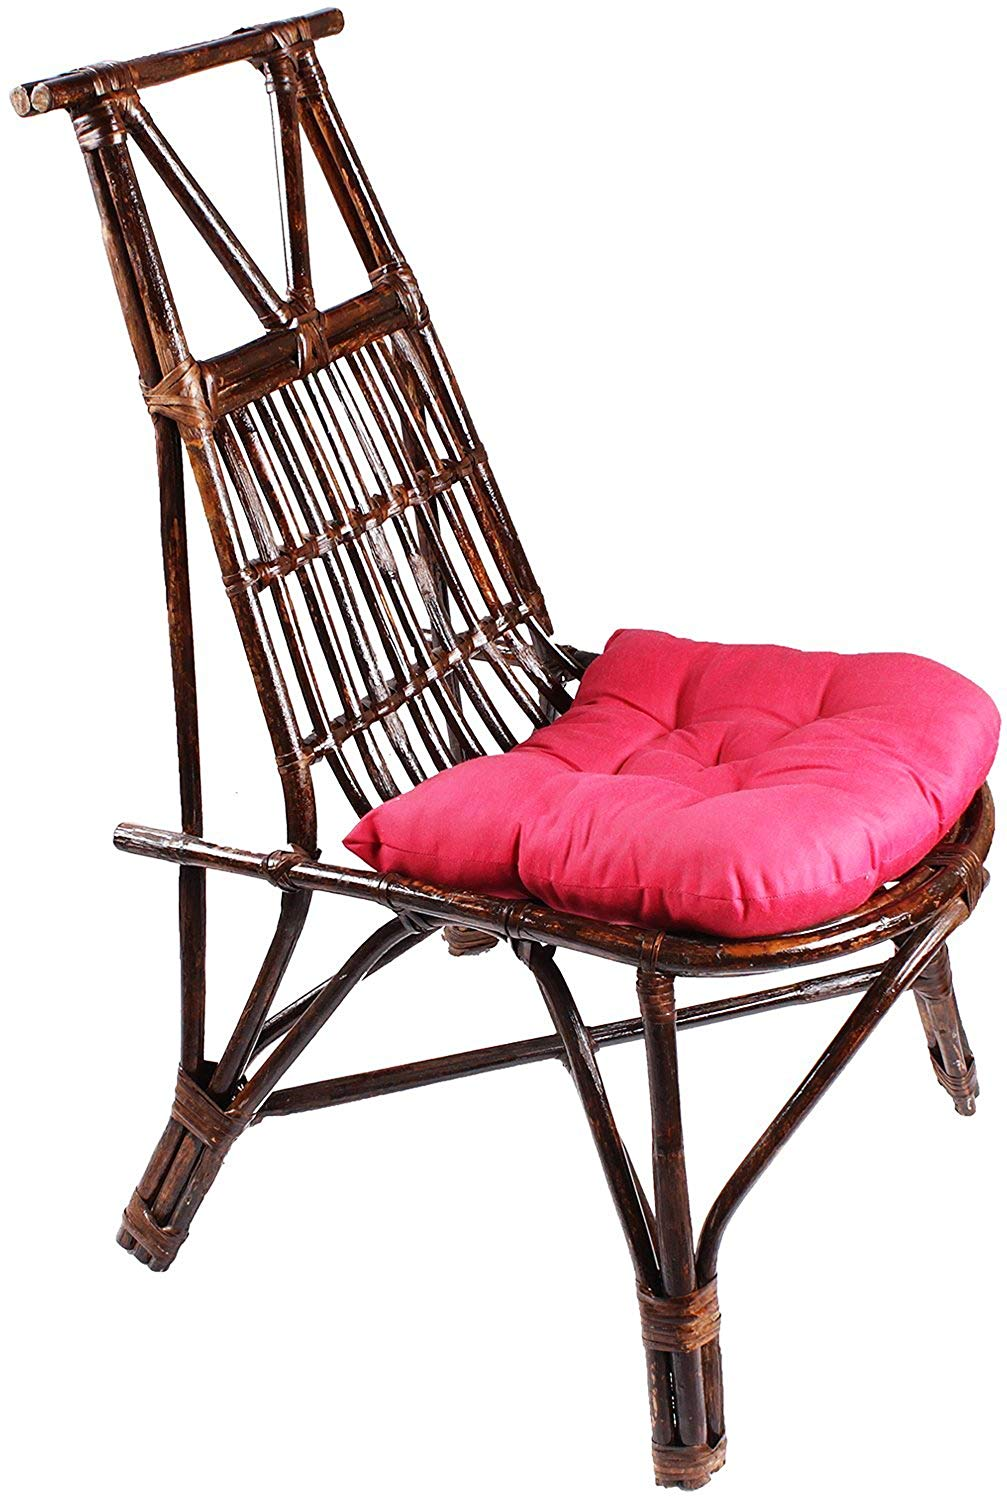 IRA Brown Chair Made of Rattan & Wicker - IRA Furniture